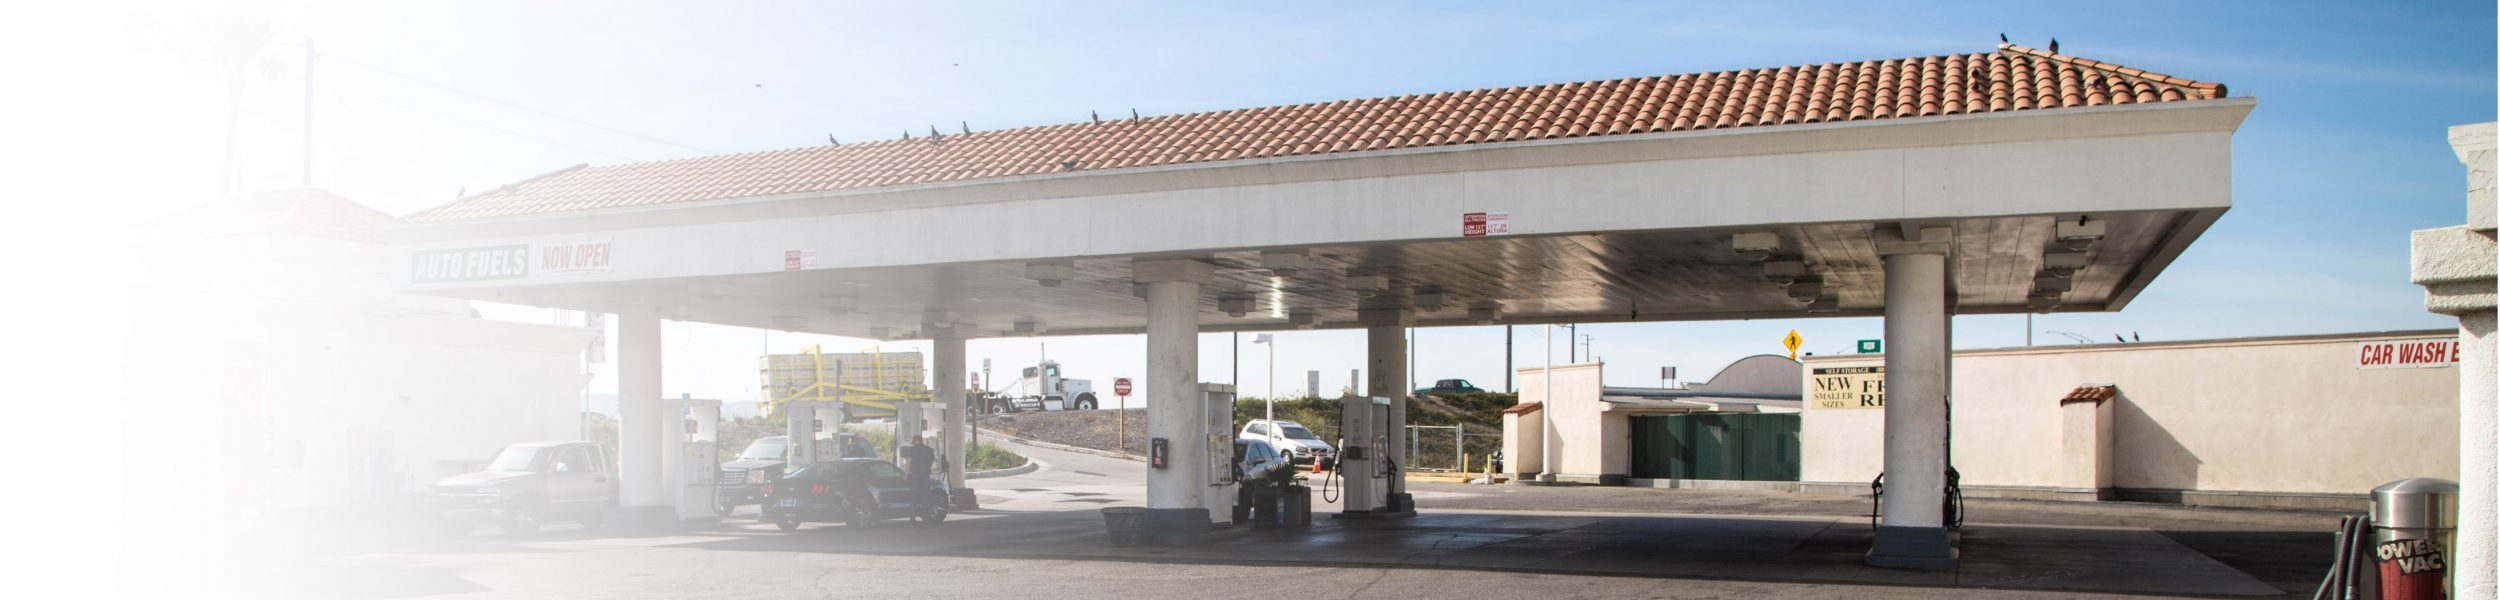 Gasoline independent quality discount at auto fuels gas station located right off the 101 freeway at the rice exit solutioingenieria Gallery